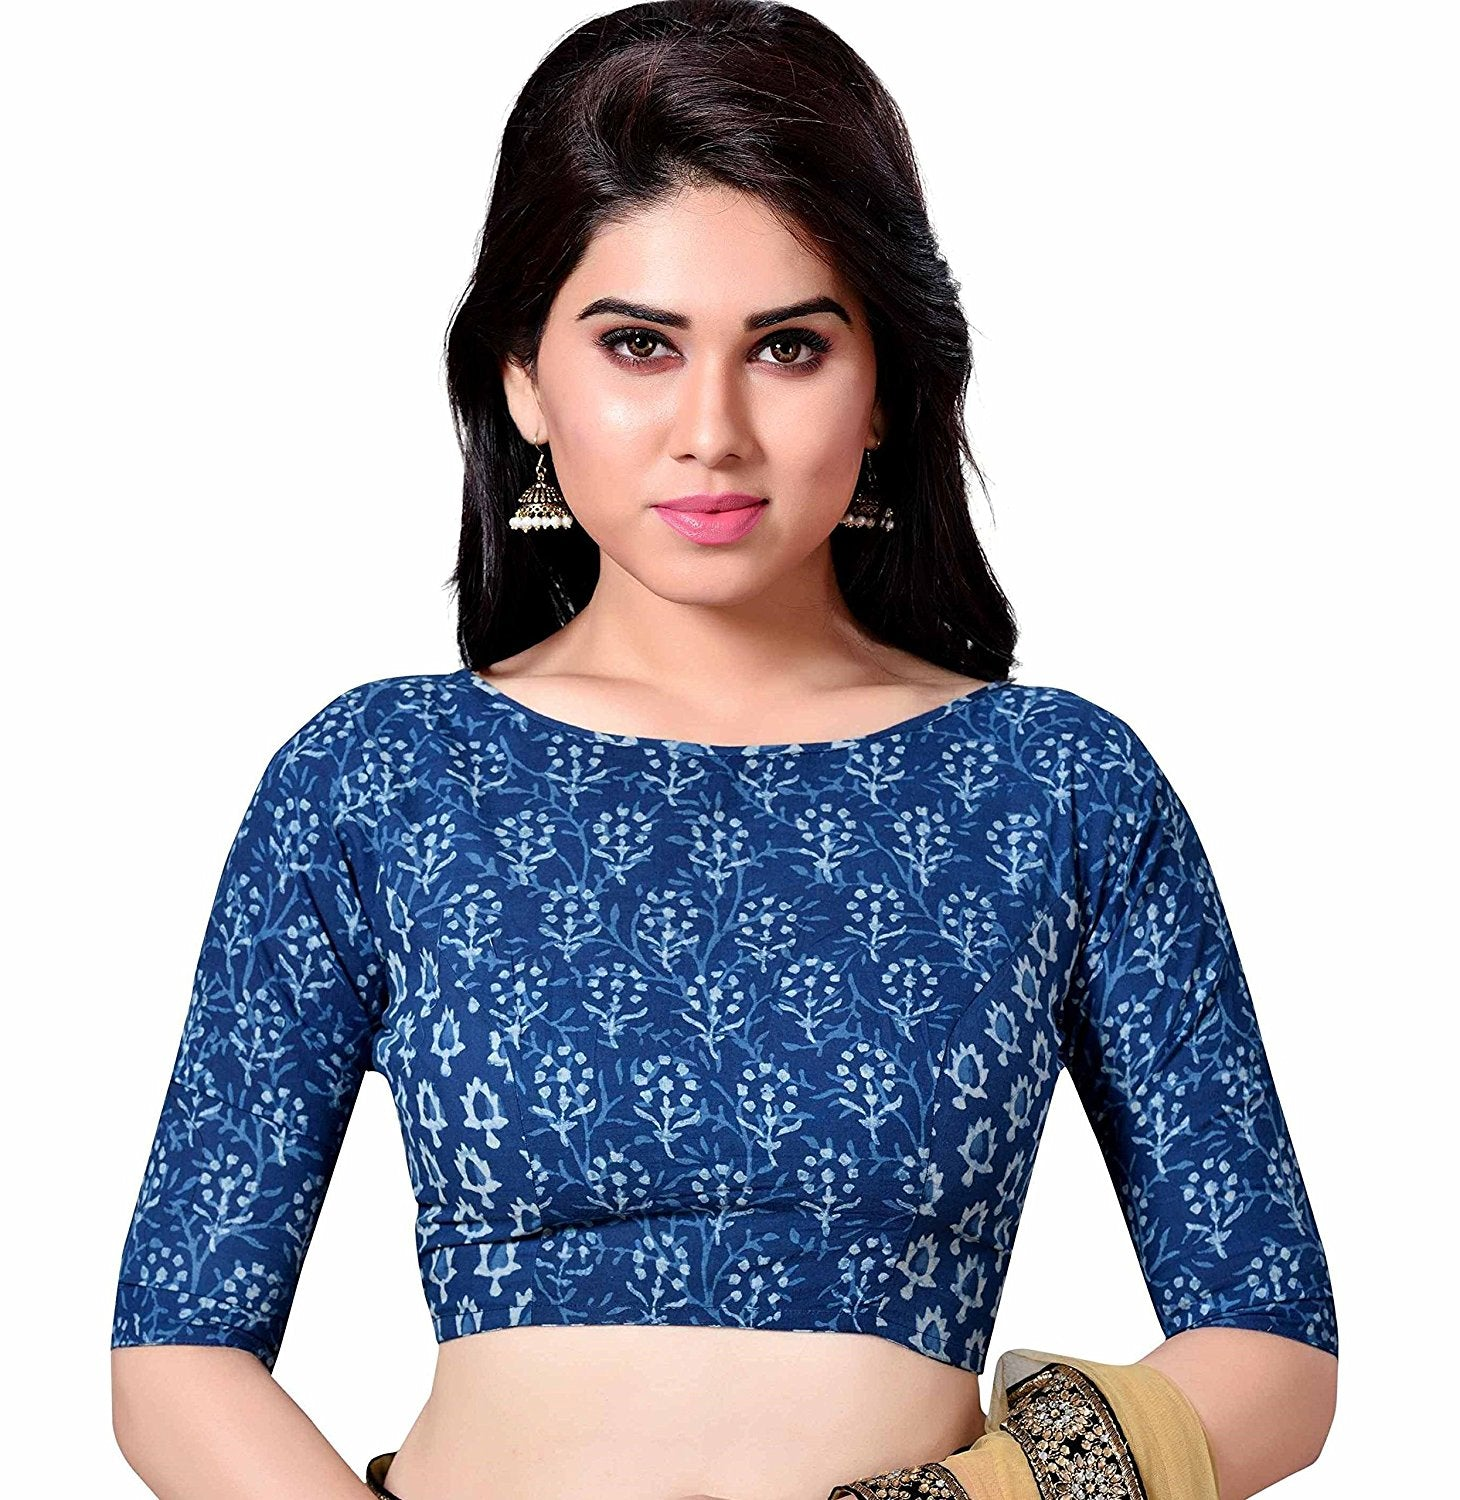 e5072696c28b1c COTTON BLUE JAIPURI BLOCK PRINTED WOMENS SAREE BLOUSE WITH BOAT NECK AND  ELBOW L